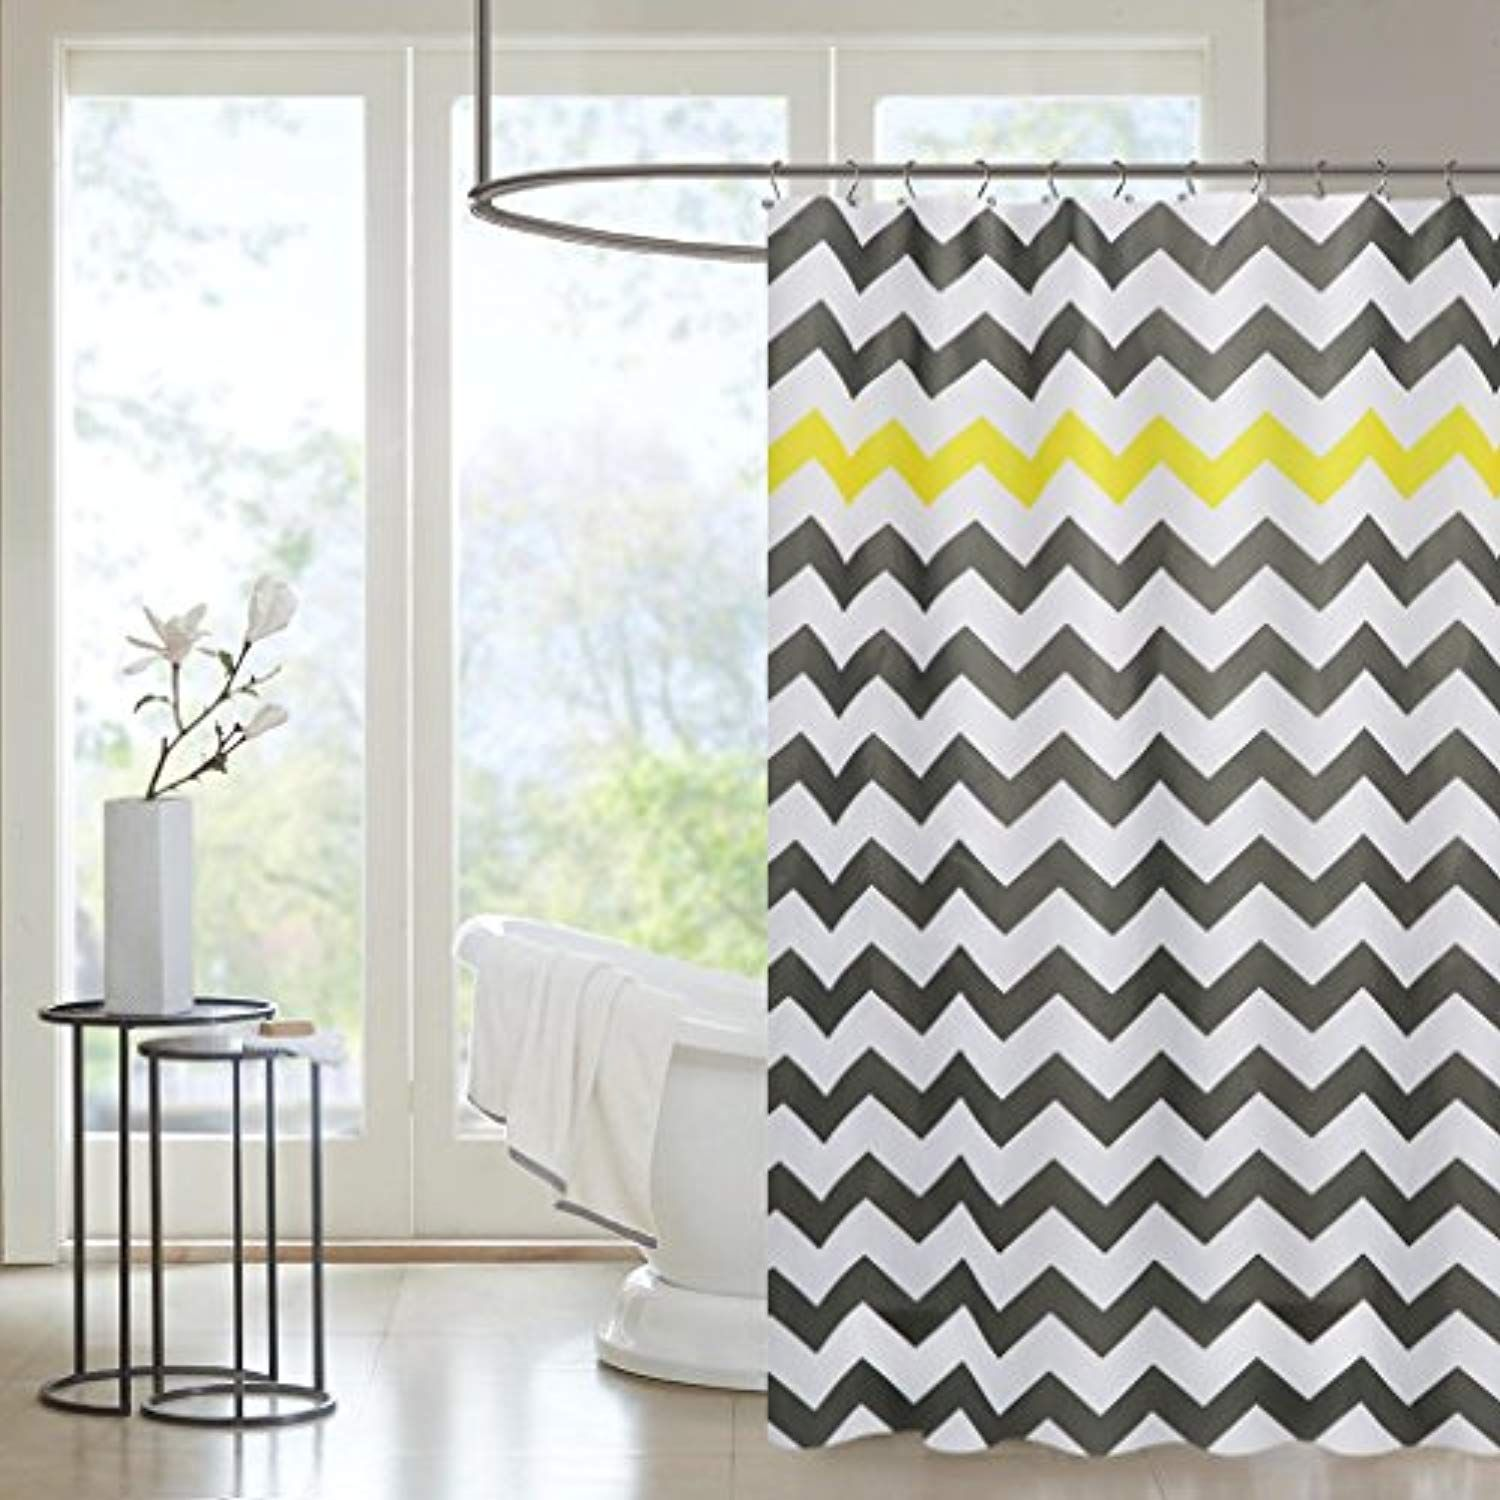 PICURA Fabric Shower Curtain Liner Cloth Mildew Resistant Washable Polyster Waterproof With 12 Hooks Eco Friendly Bath